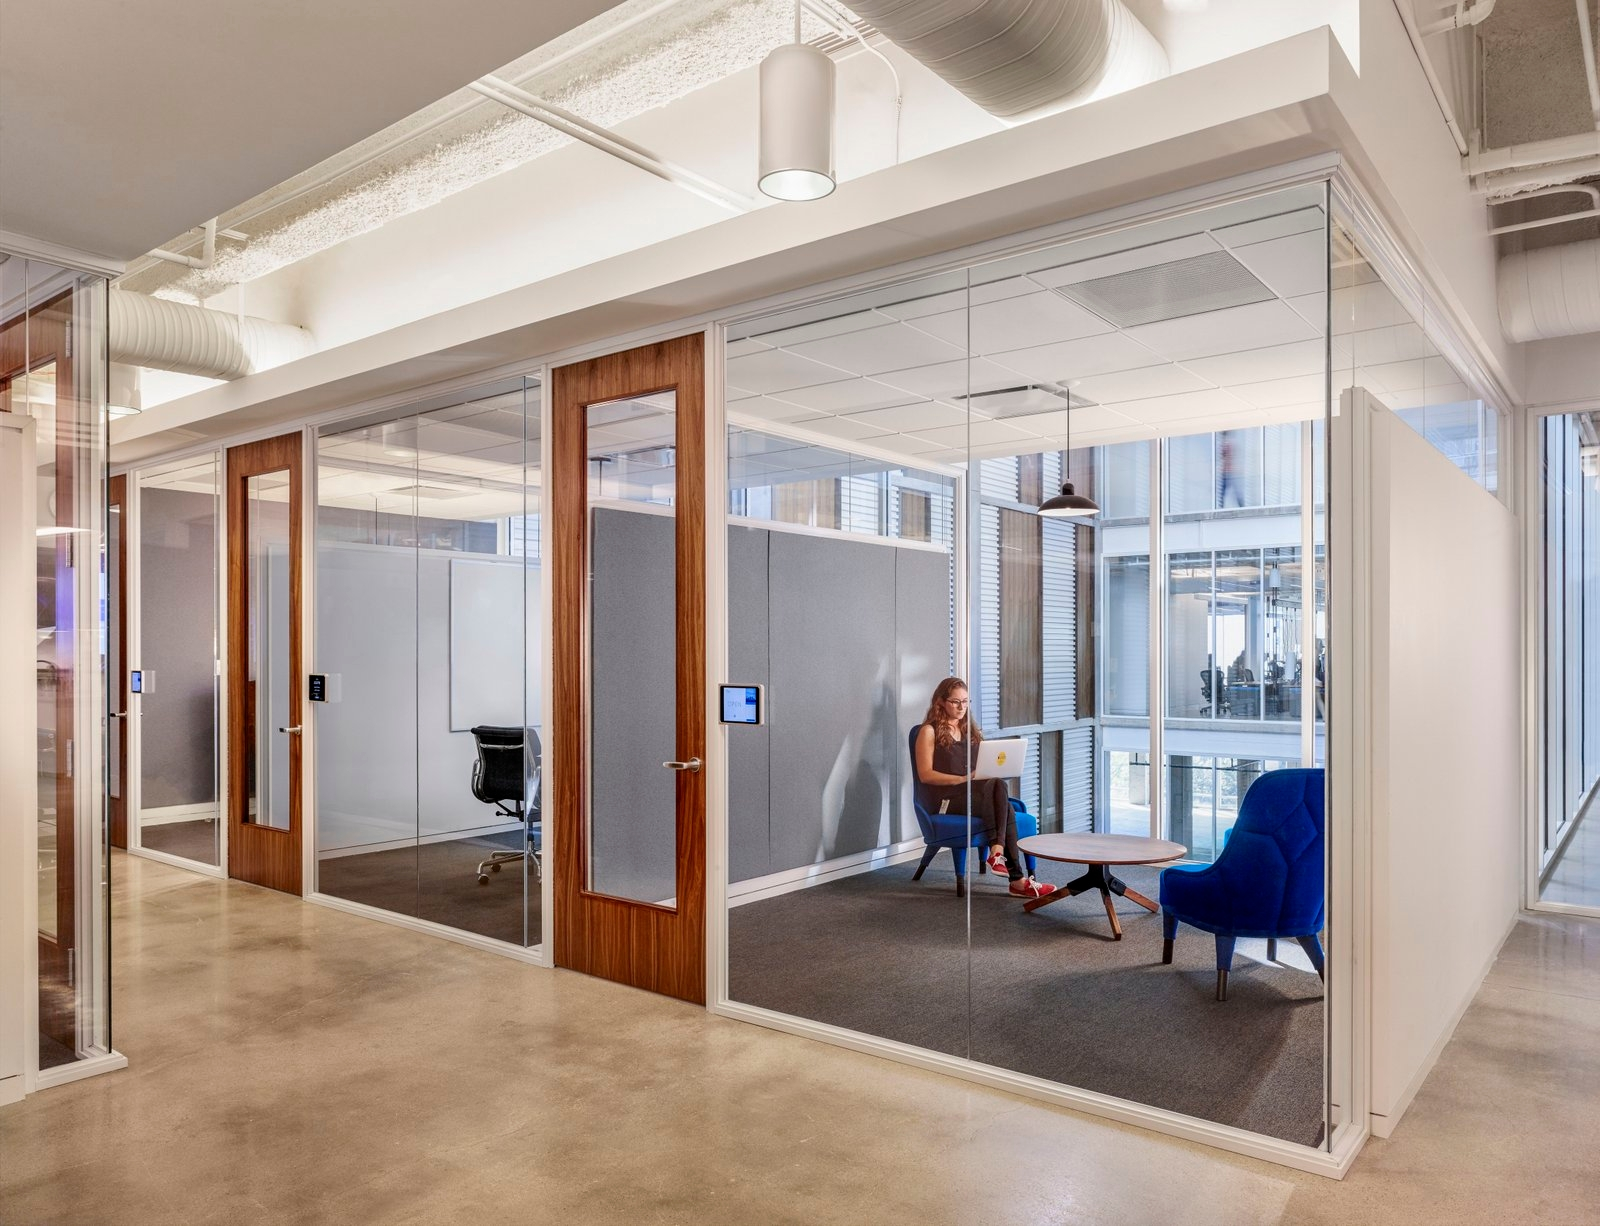 Dropbox Office Design Looks Modern